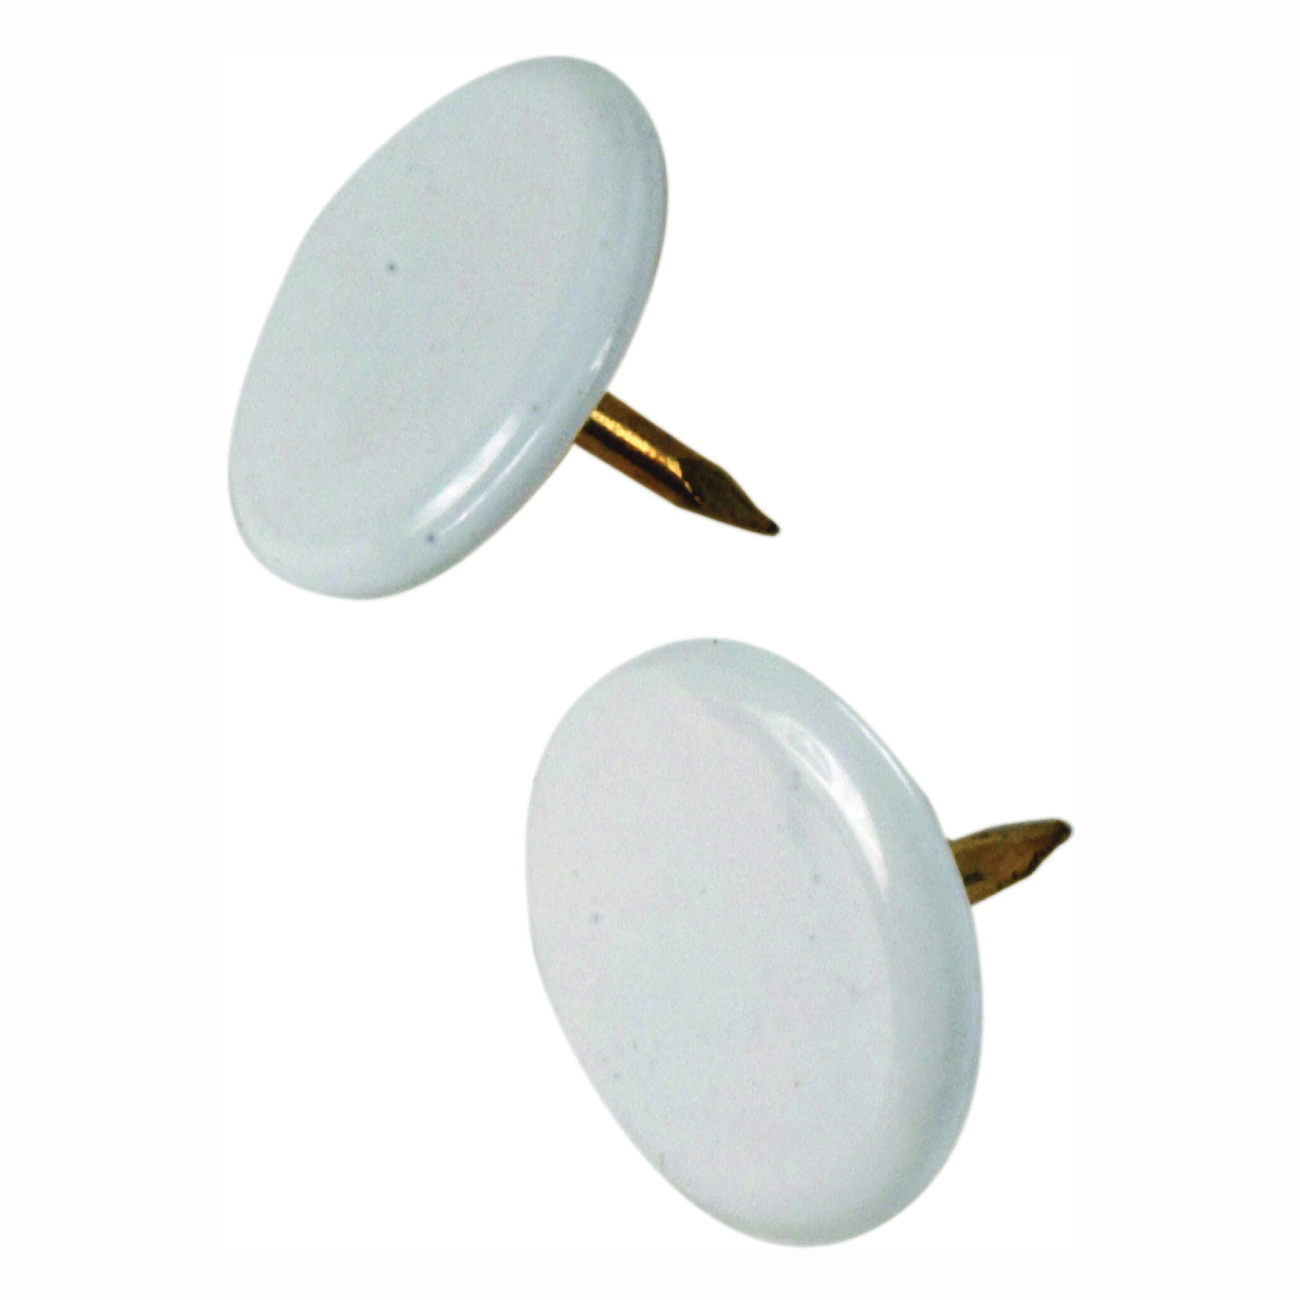 Picture of HILLMAN 122674 Thumb Tack, 15/64 in Shank, Steel, Painted, White, Cap Head, Sharp Point, Snap-Pak